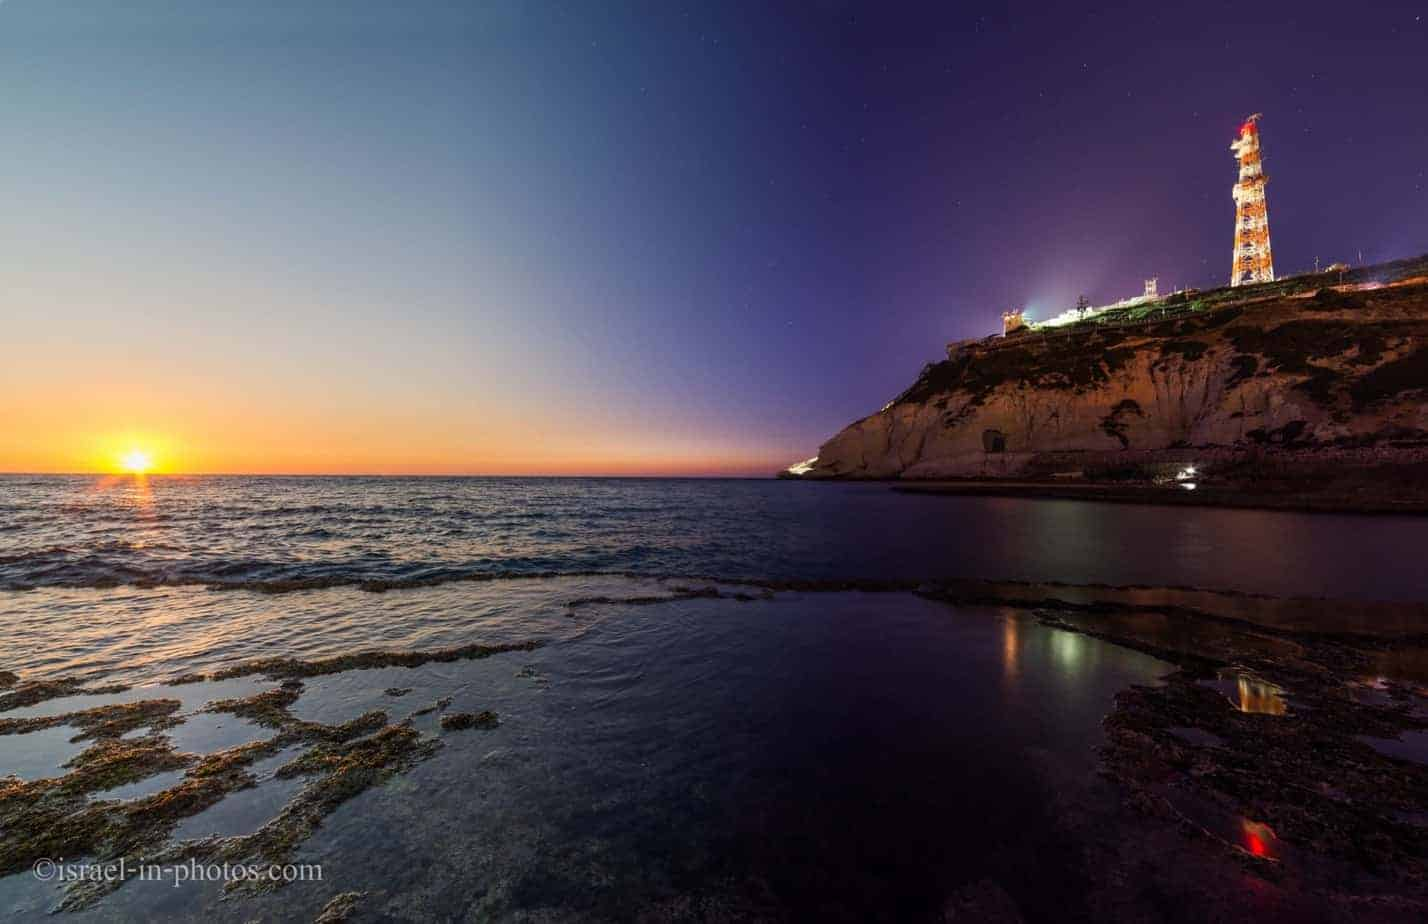 View of Rosh Hanikra from Achziv Beach, Israel